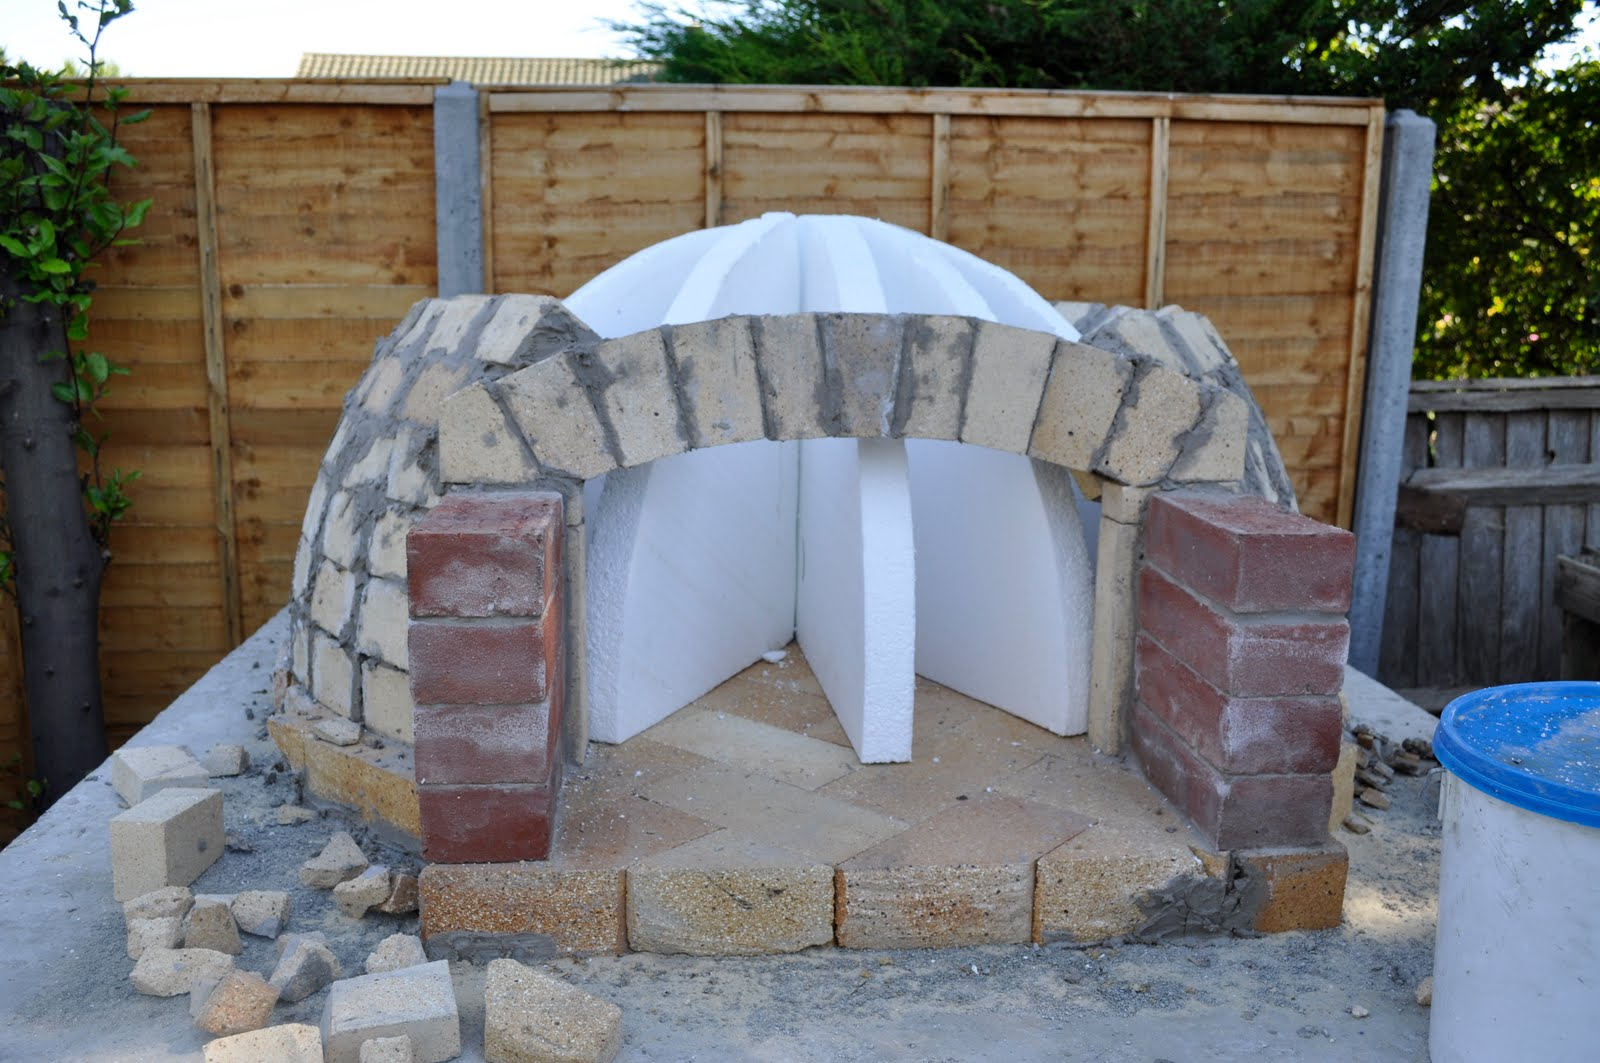 polystyrene formers in diy pizza oven project